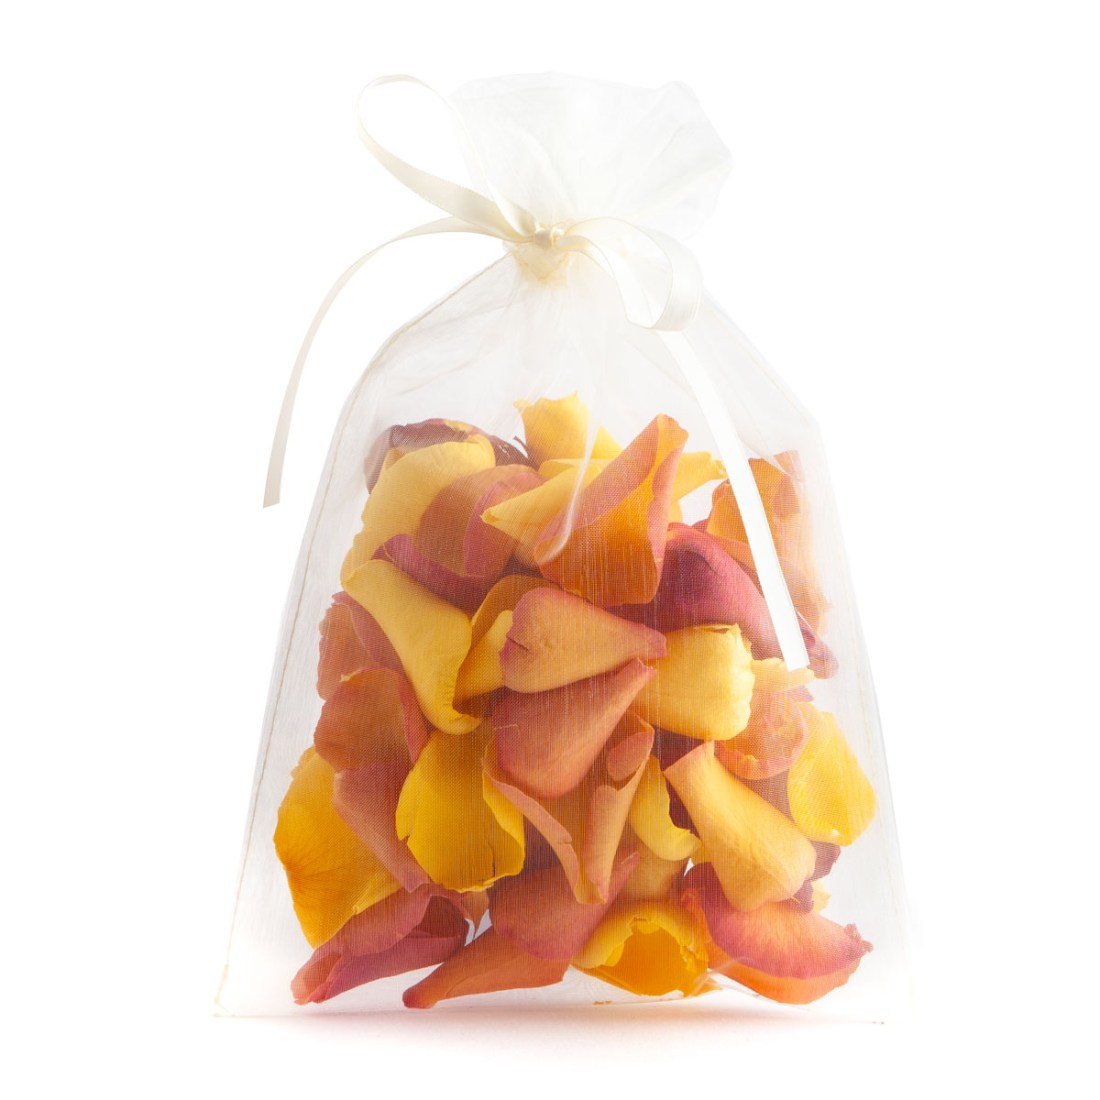 Biodegradable Confetti - Sunset, Yellow and Red Large Natural Rose Petals - 10 Handful Bag